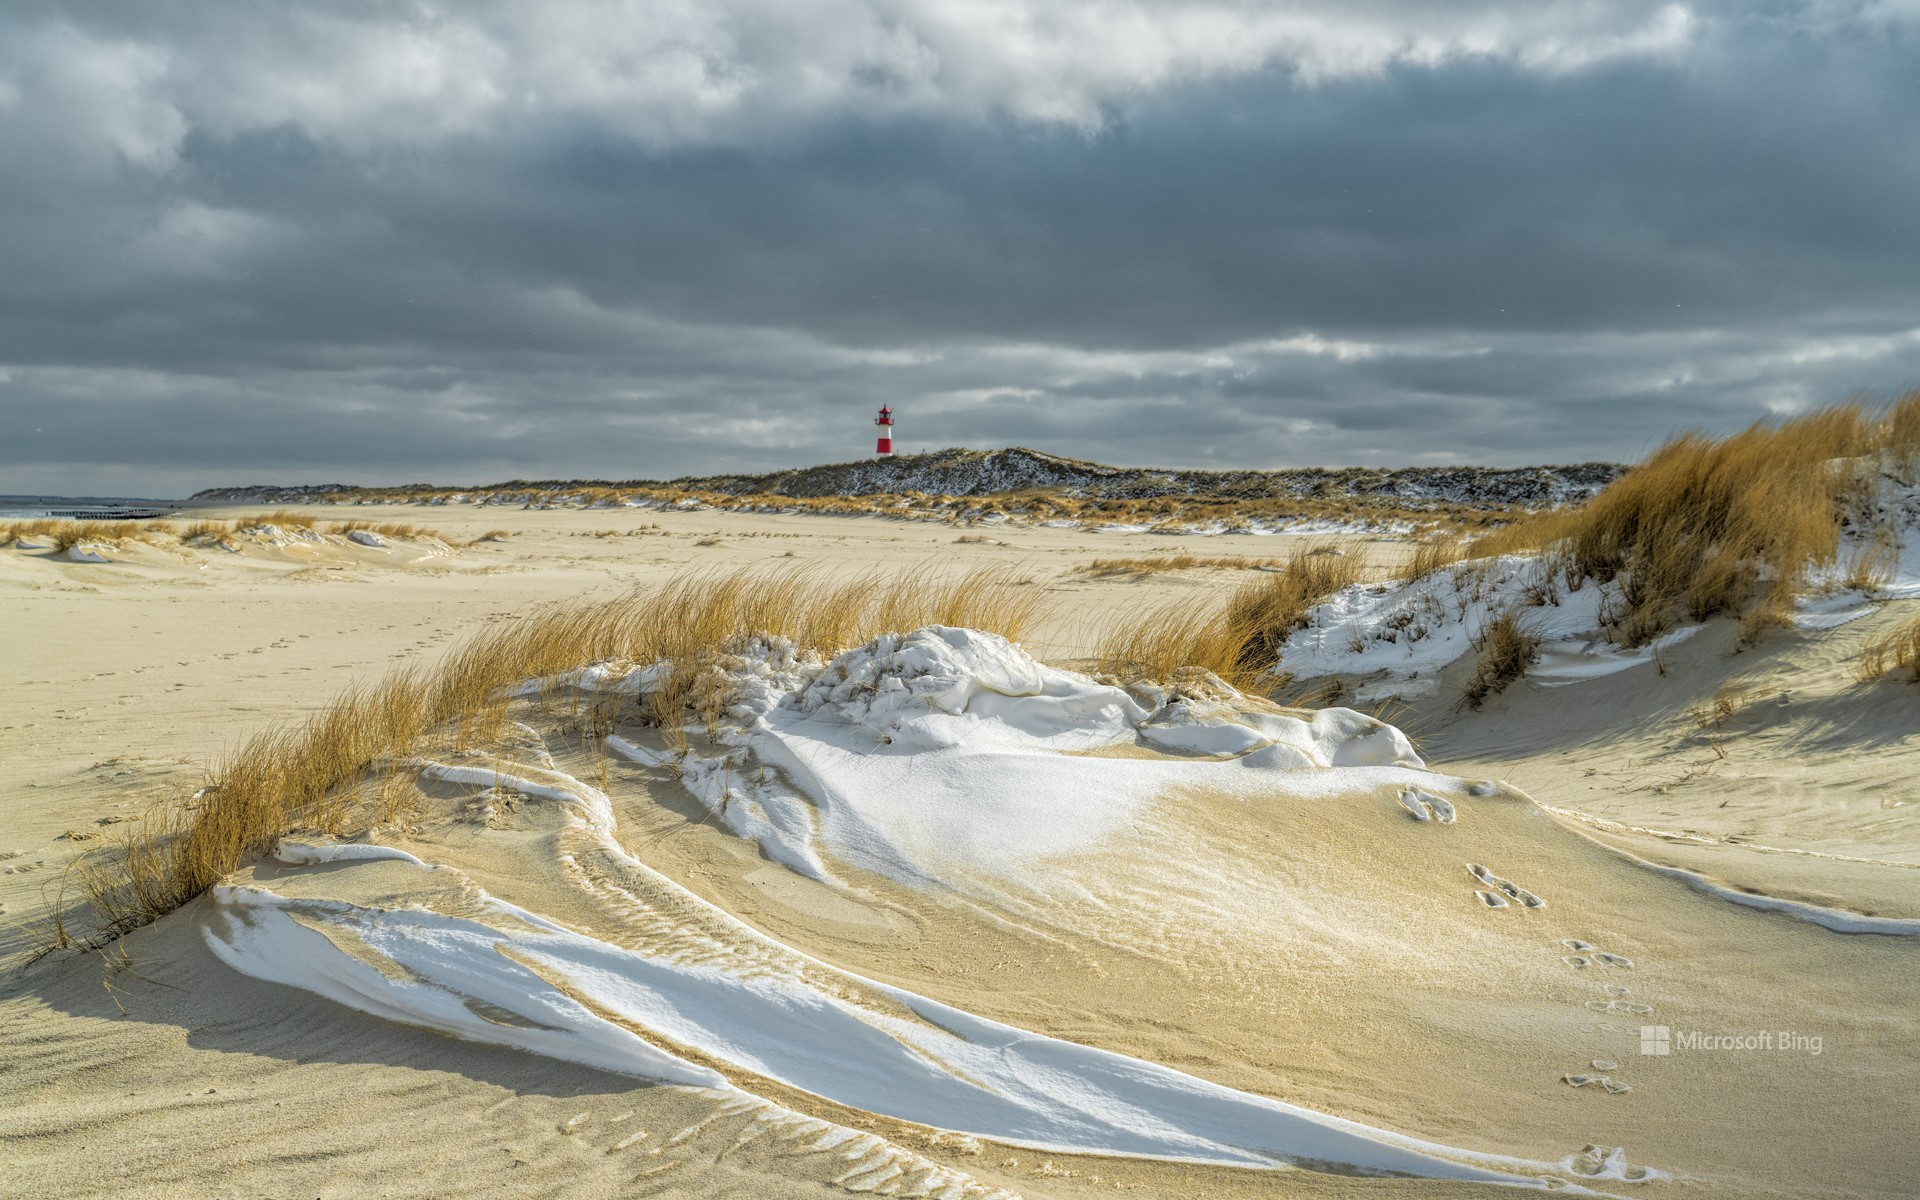 Beach on the island of Sylt, Schleswig-Holstein, in winter